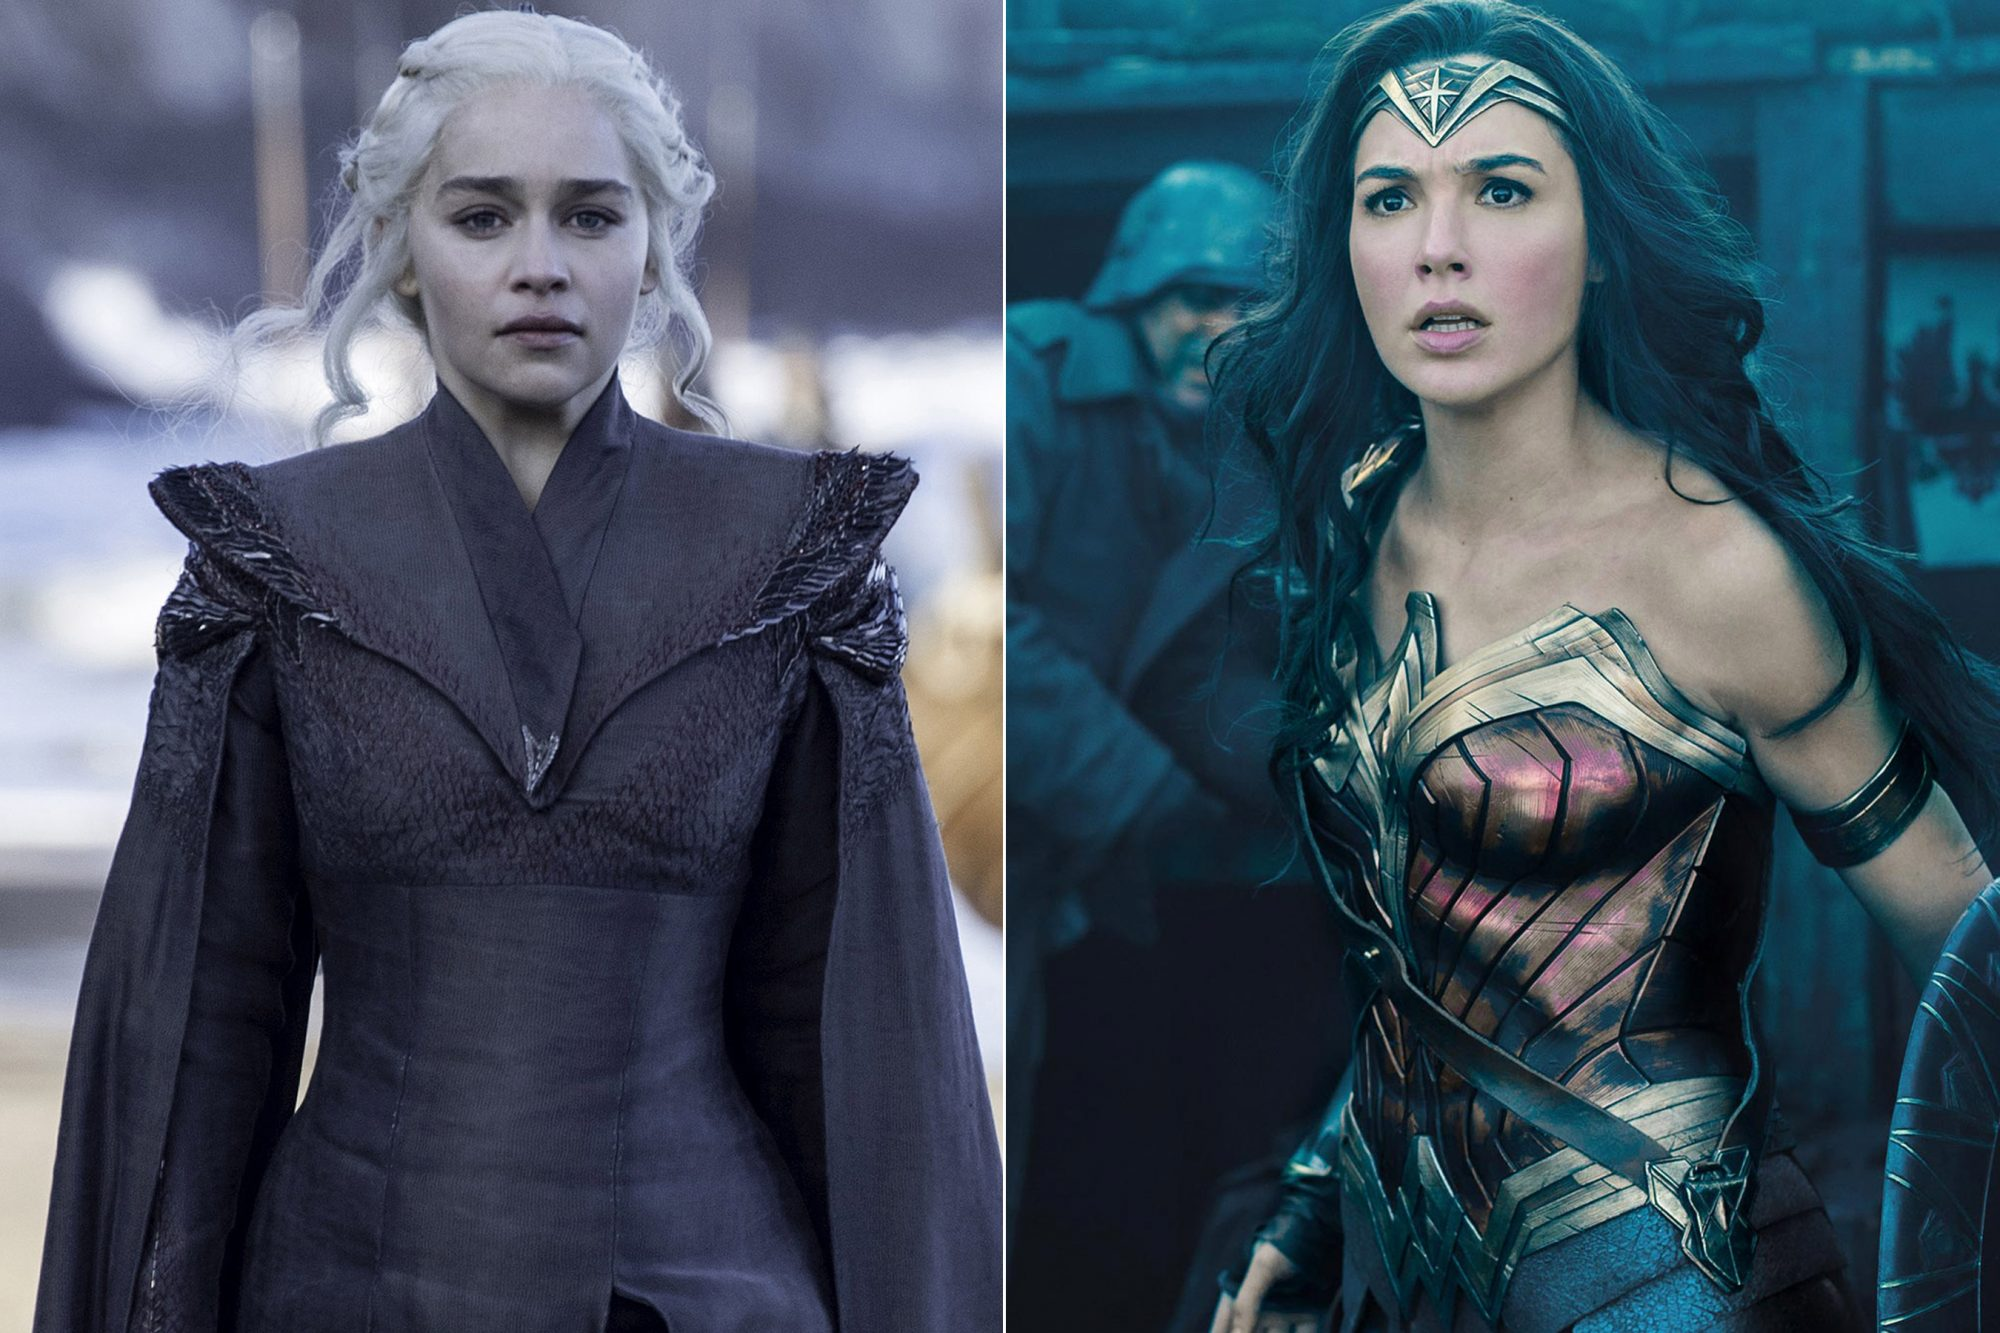 Game of Thrones Emilia Clarke / Wonder Woman Gal Gadot